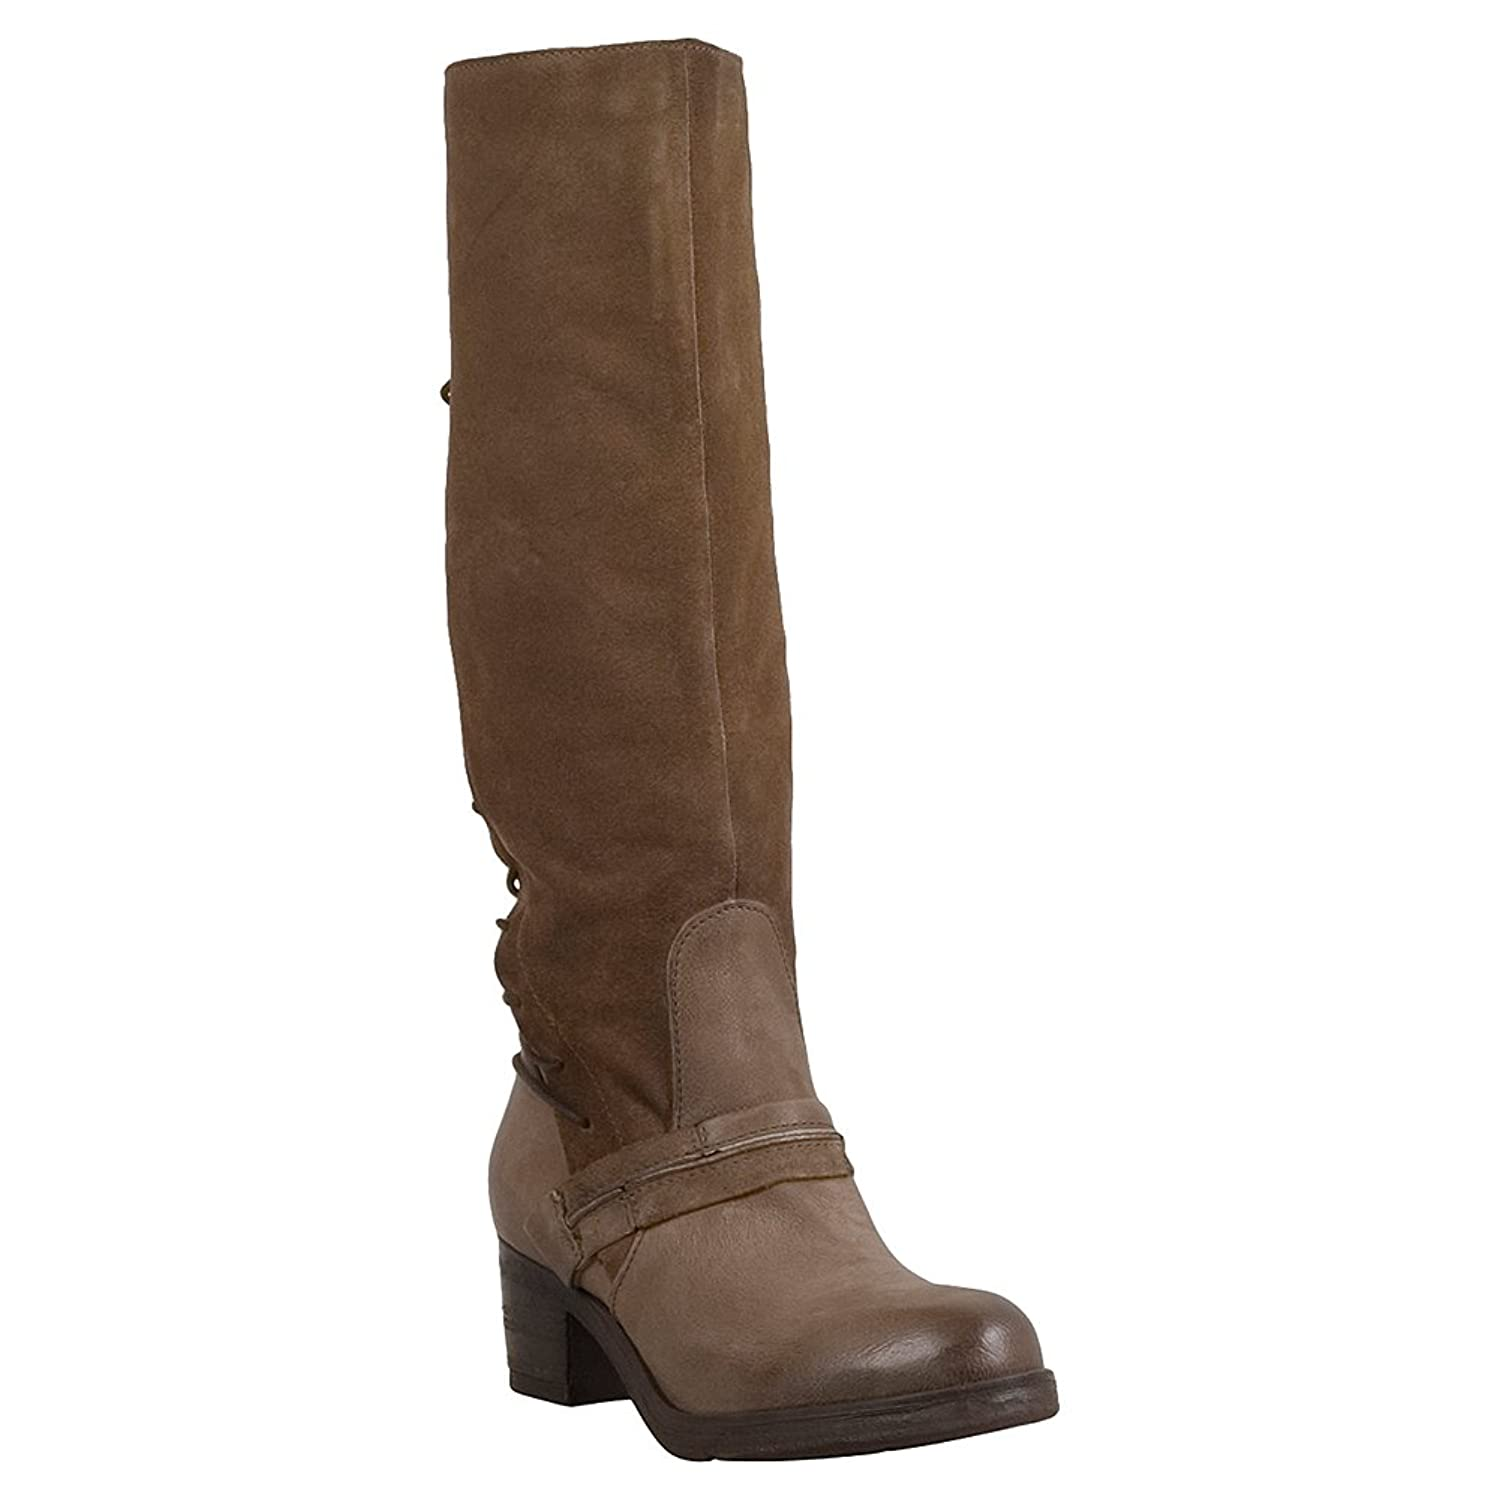 durable service Miz Mooz Women's Shankara Fashion Boot